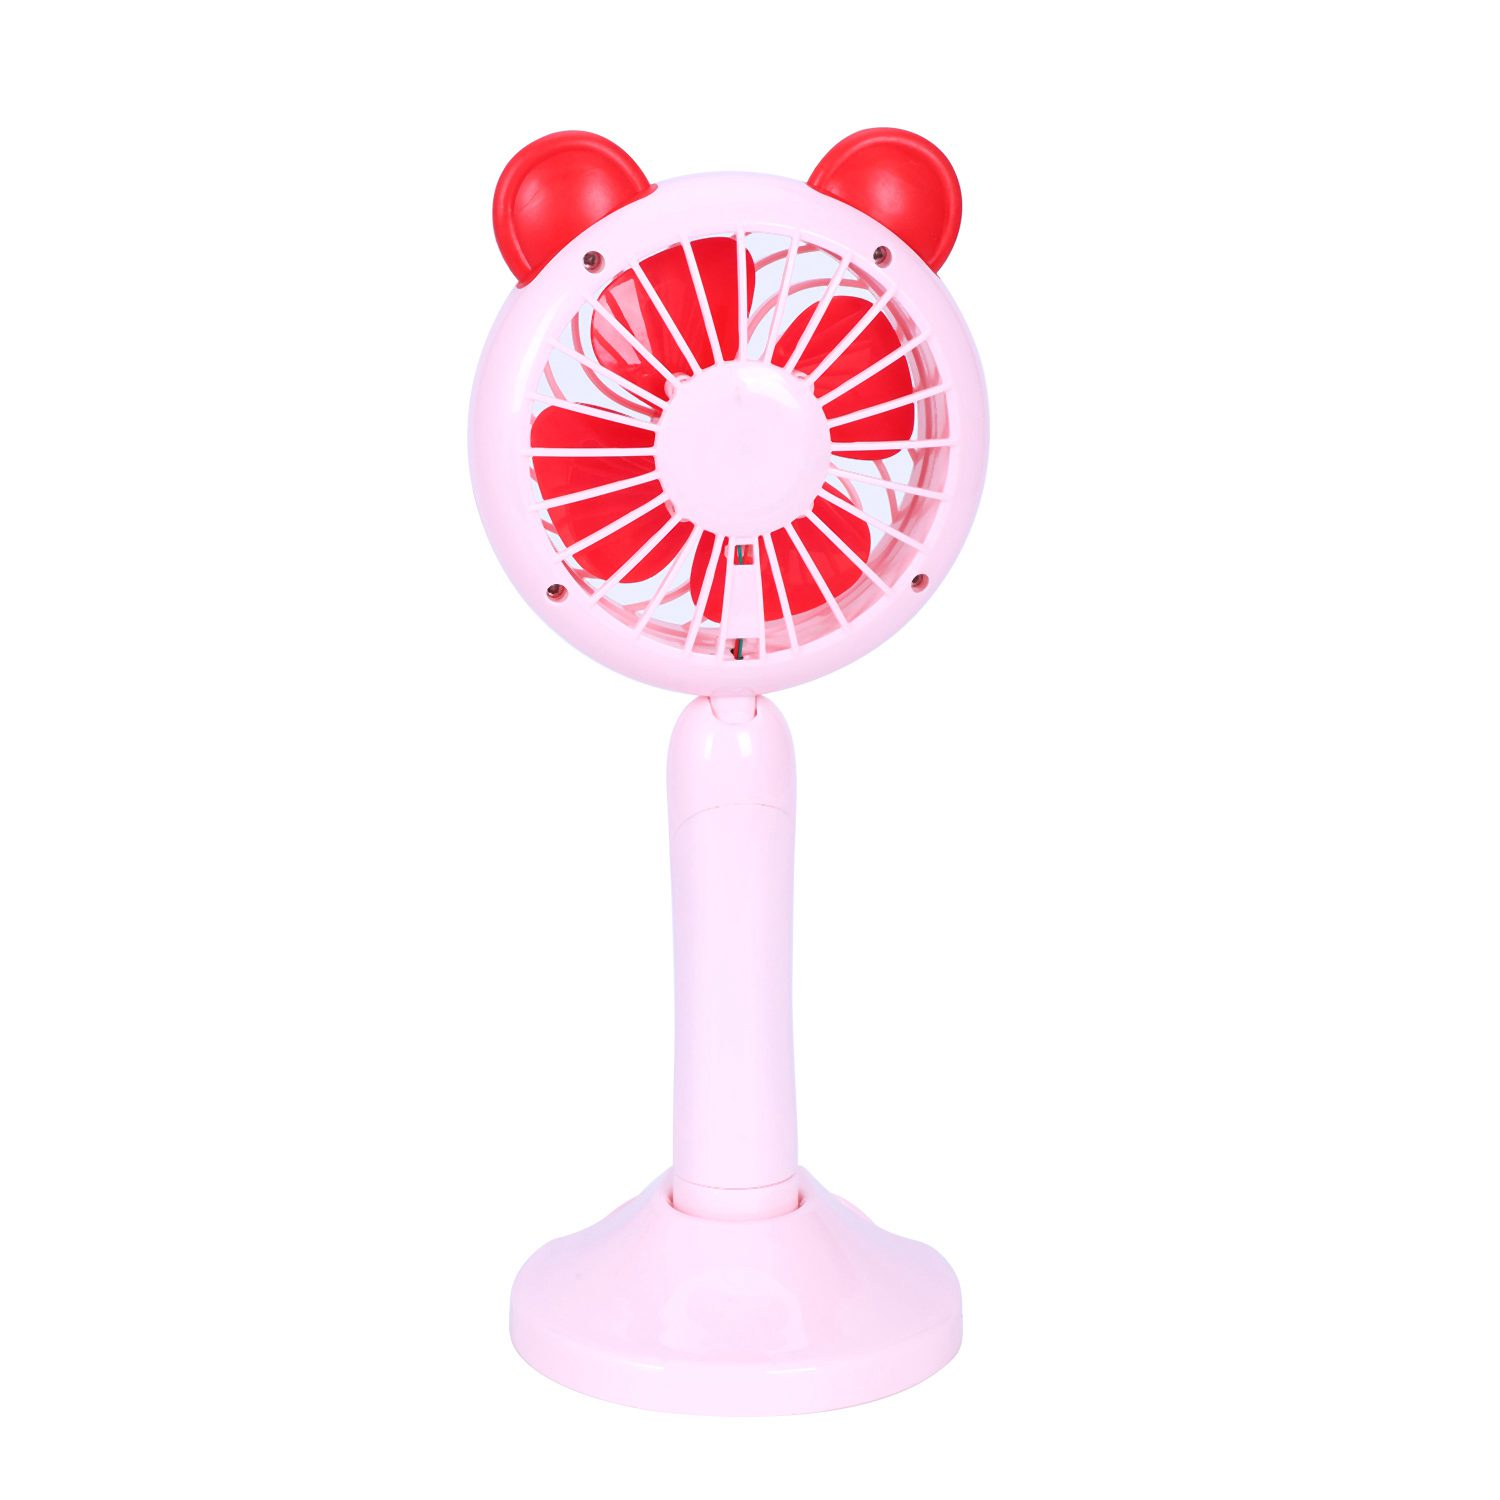 Hot TOD-Super Cute Multifunction Portable Phone Selfie LED Ring Light USB Charger Fan For Hot Summer Phone HolderHot TOD-Super Cute Multifunction Portable Phone Selfie LED Ring Light USB Charger Fan For Hot Summer Phone Holder